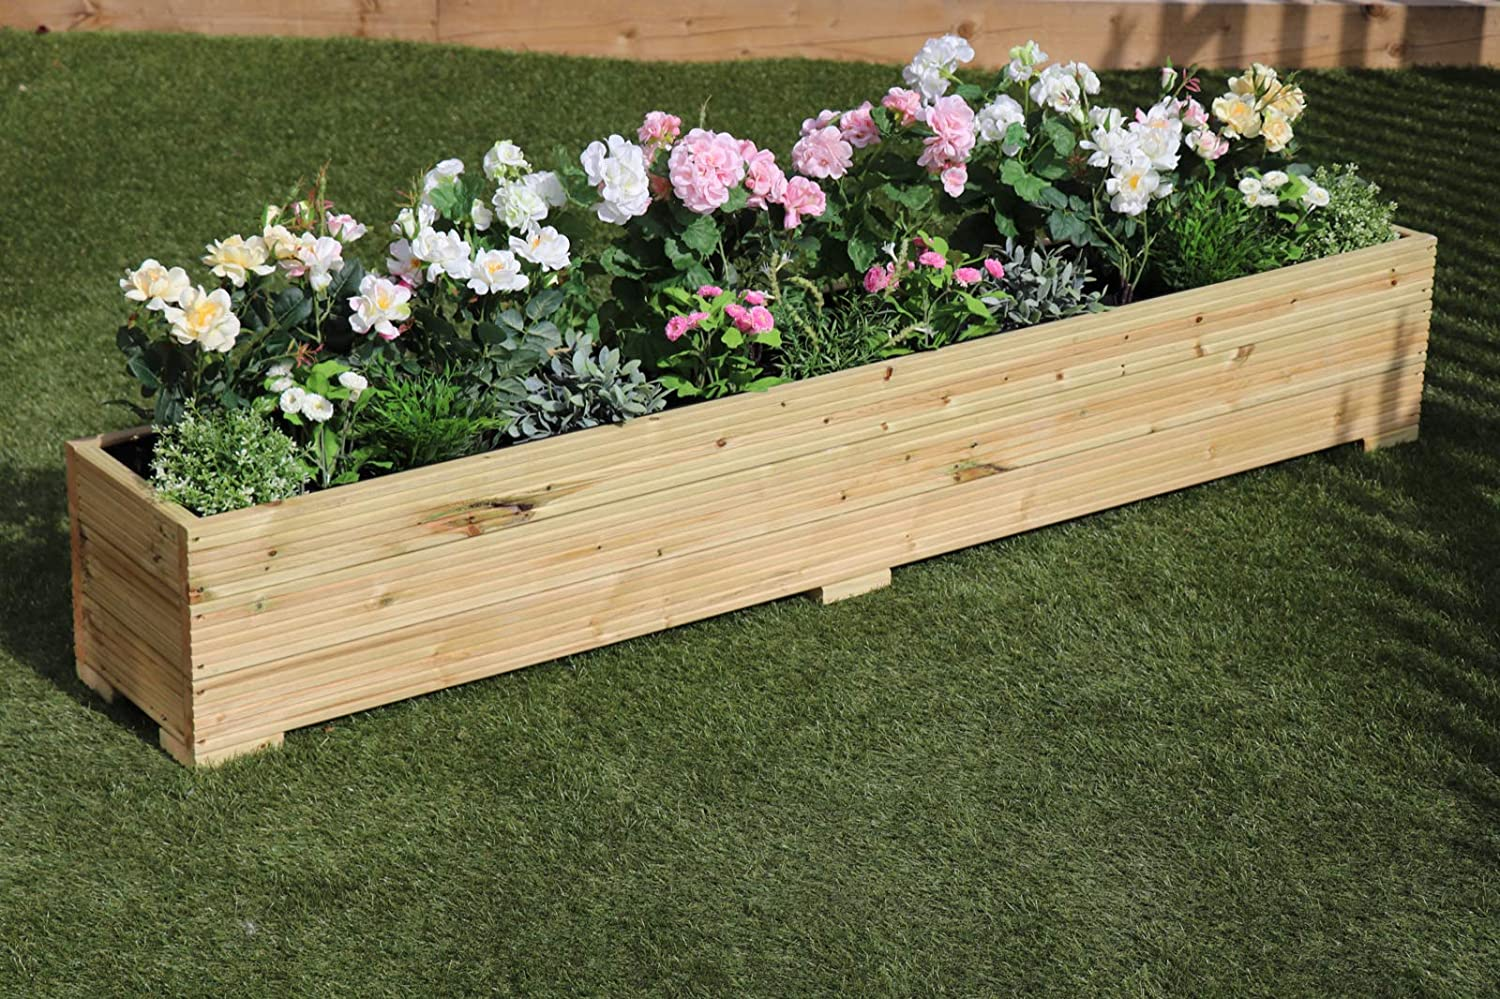 Flower Planter Decking Garden Plant Tub Trough Square 30cm Wooden Patio Tree